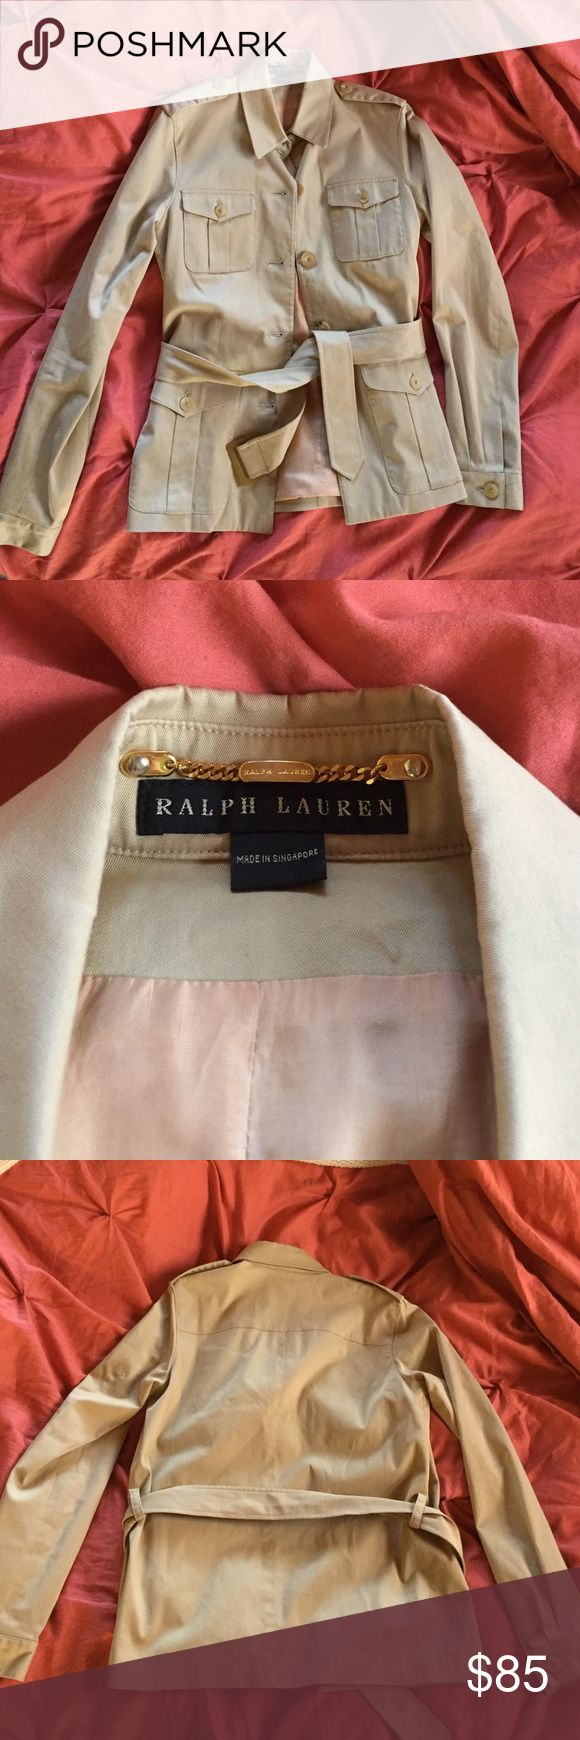 RALPH LAUREN women's button down utility jacket Ralph Lauren tan women's trench jacket. Perfect for fall. Gently used. Small stain on belt pictured above. Size 6 but runs a bit smaller. 4 botton close pockets in the front bottomed sleeve cuffs and shoulder detail. Ralph Lauren Jackets & Coats Utility Jackets